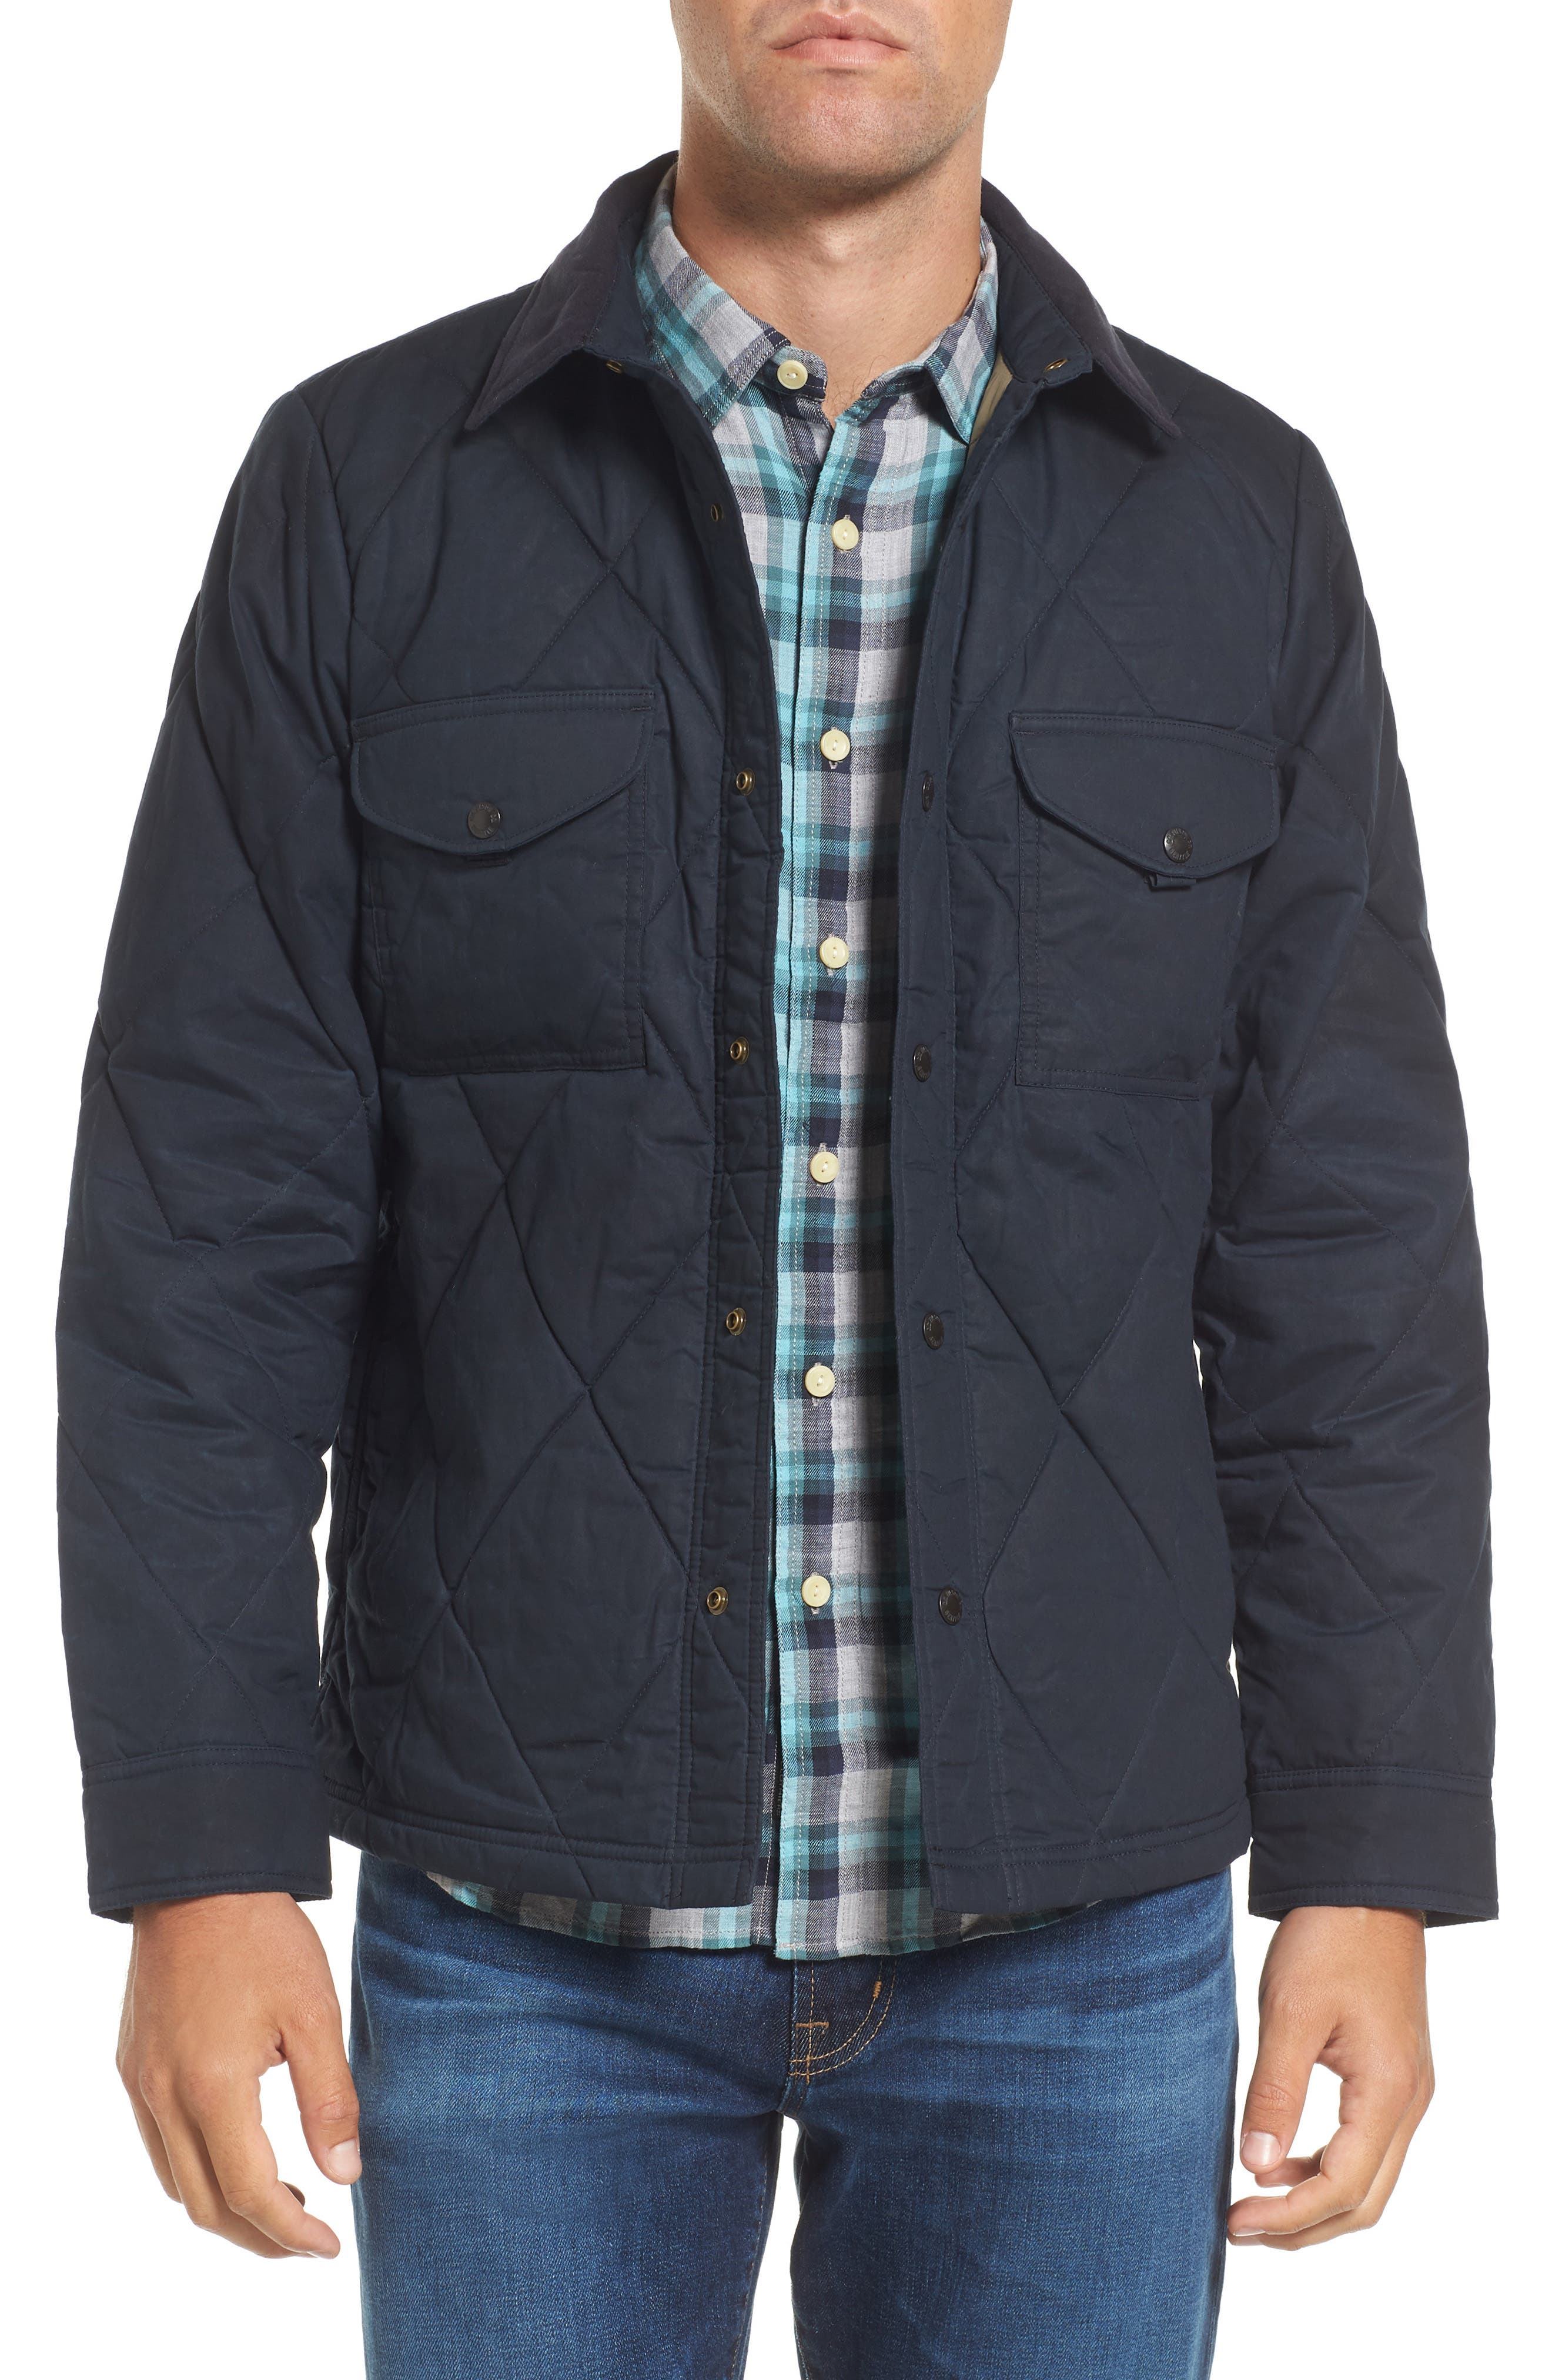 Alternate Image 1 Selected - Filson Hyder Quilted Water-Repellent Shirt Jacket